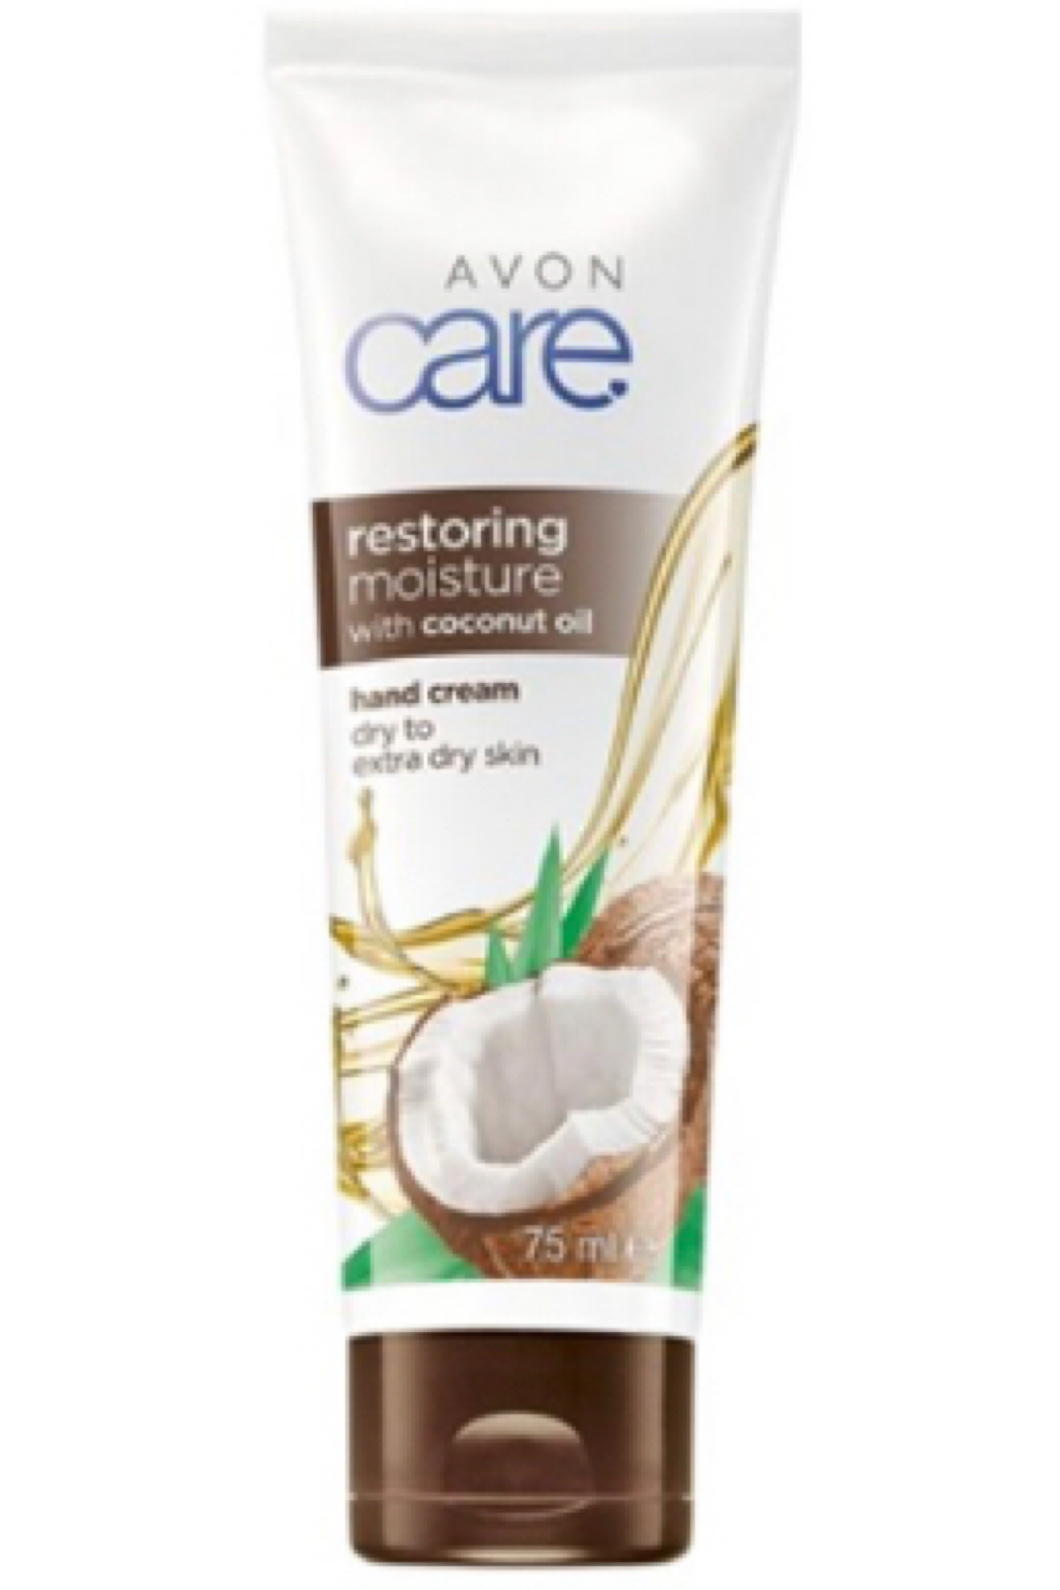 Avon Care Restoring Moisture with Coconut Oil Hand Cream 75ml